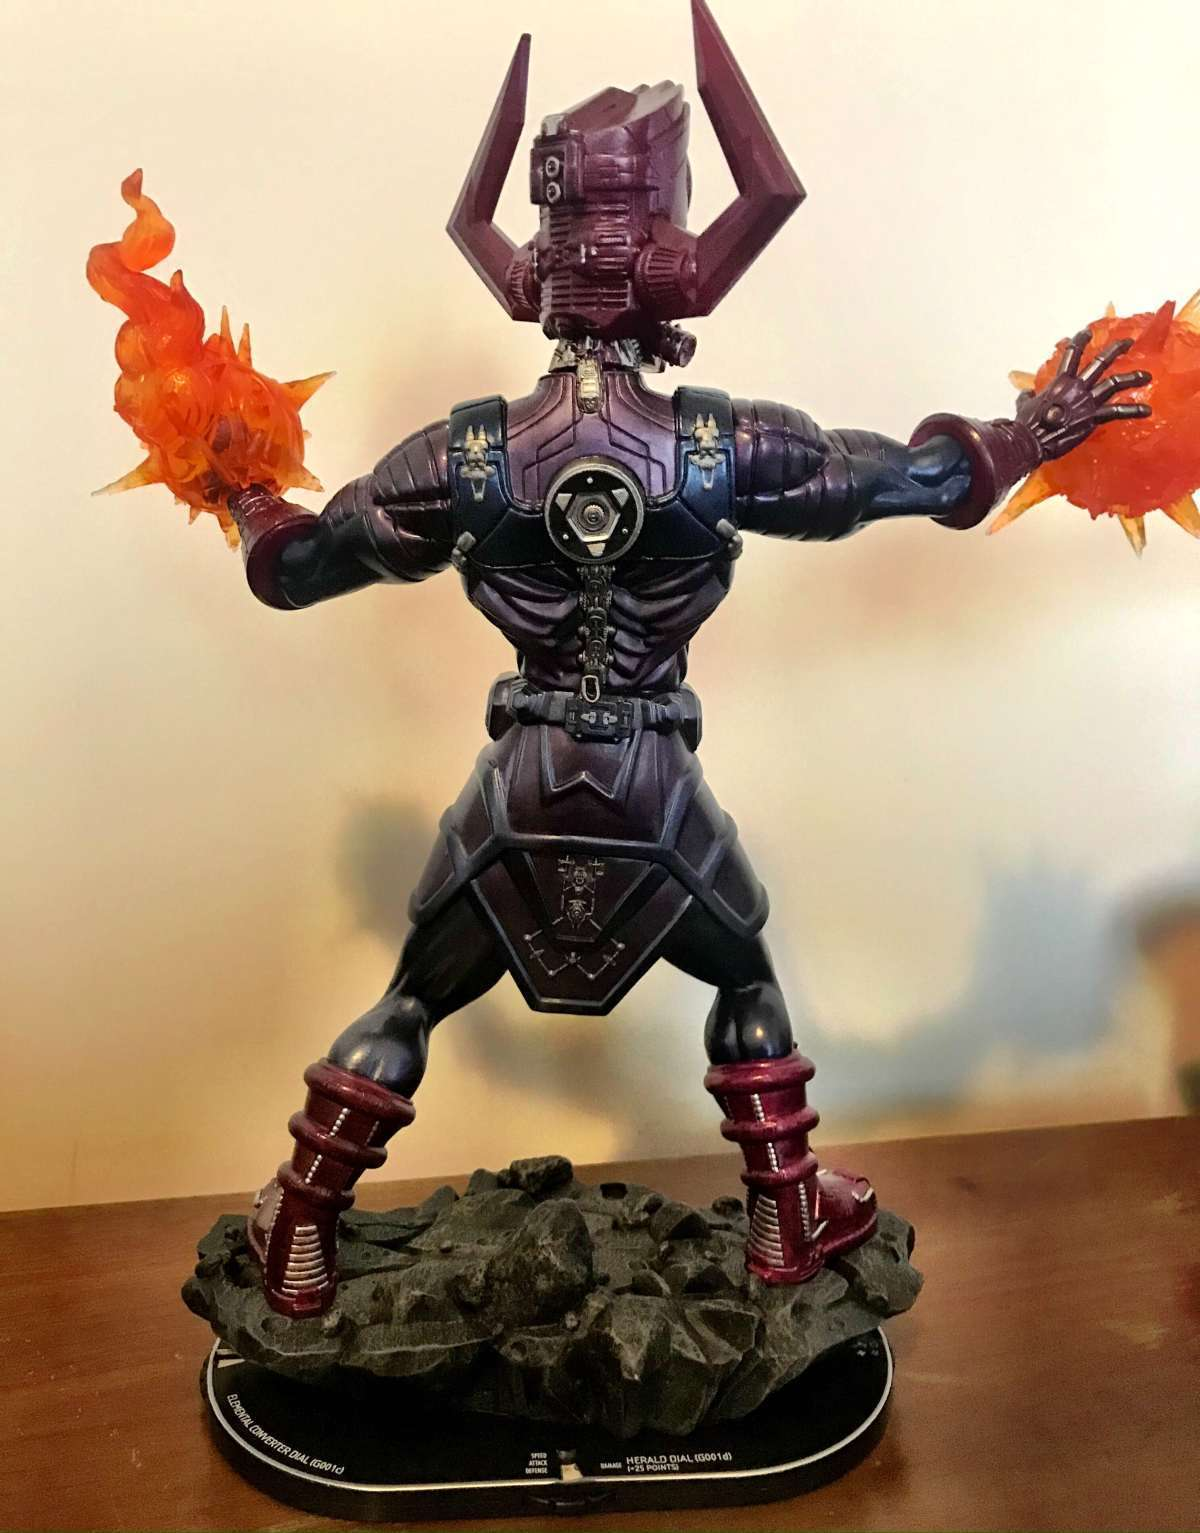 Marvel Heroclix Galactus - Devourer of Worlds Premium Colossal Figure 004